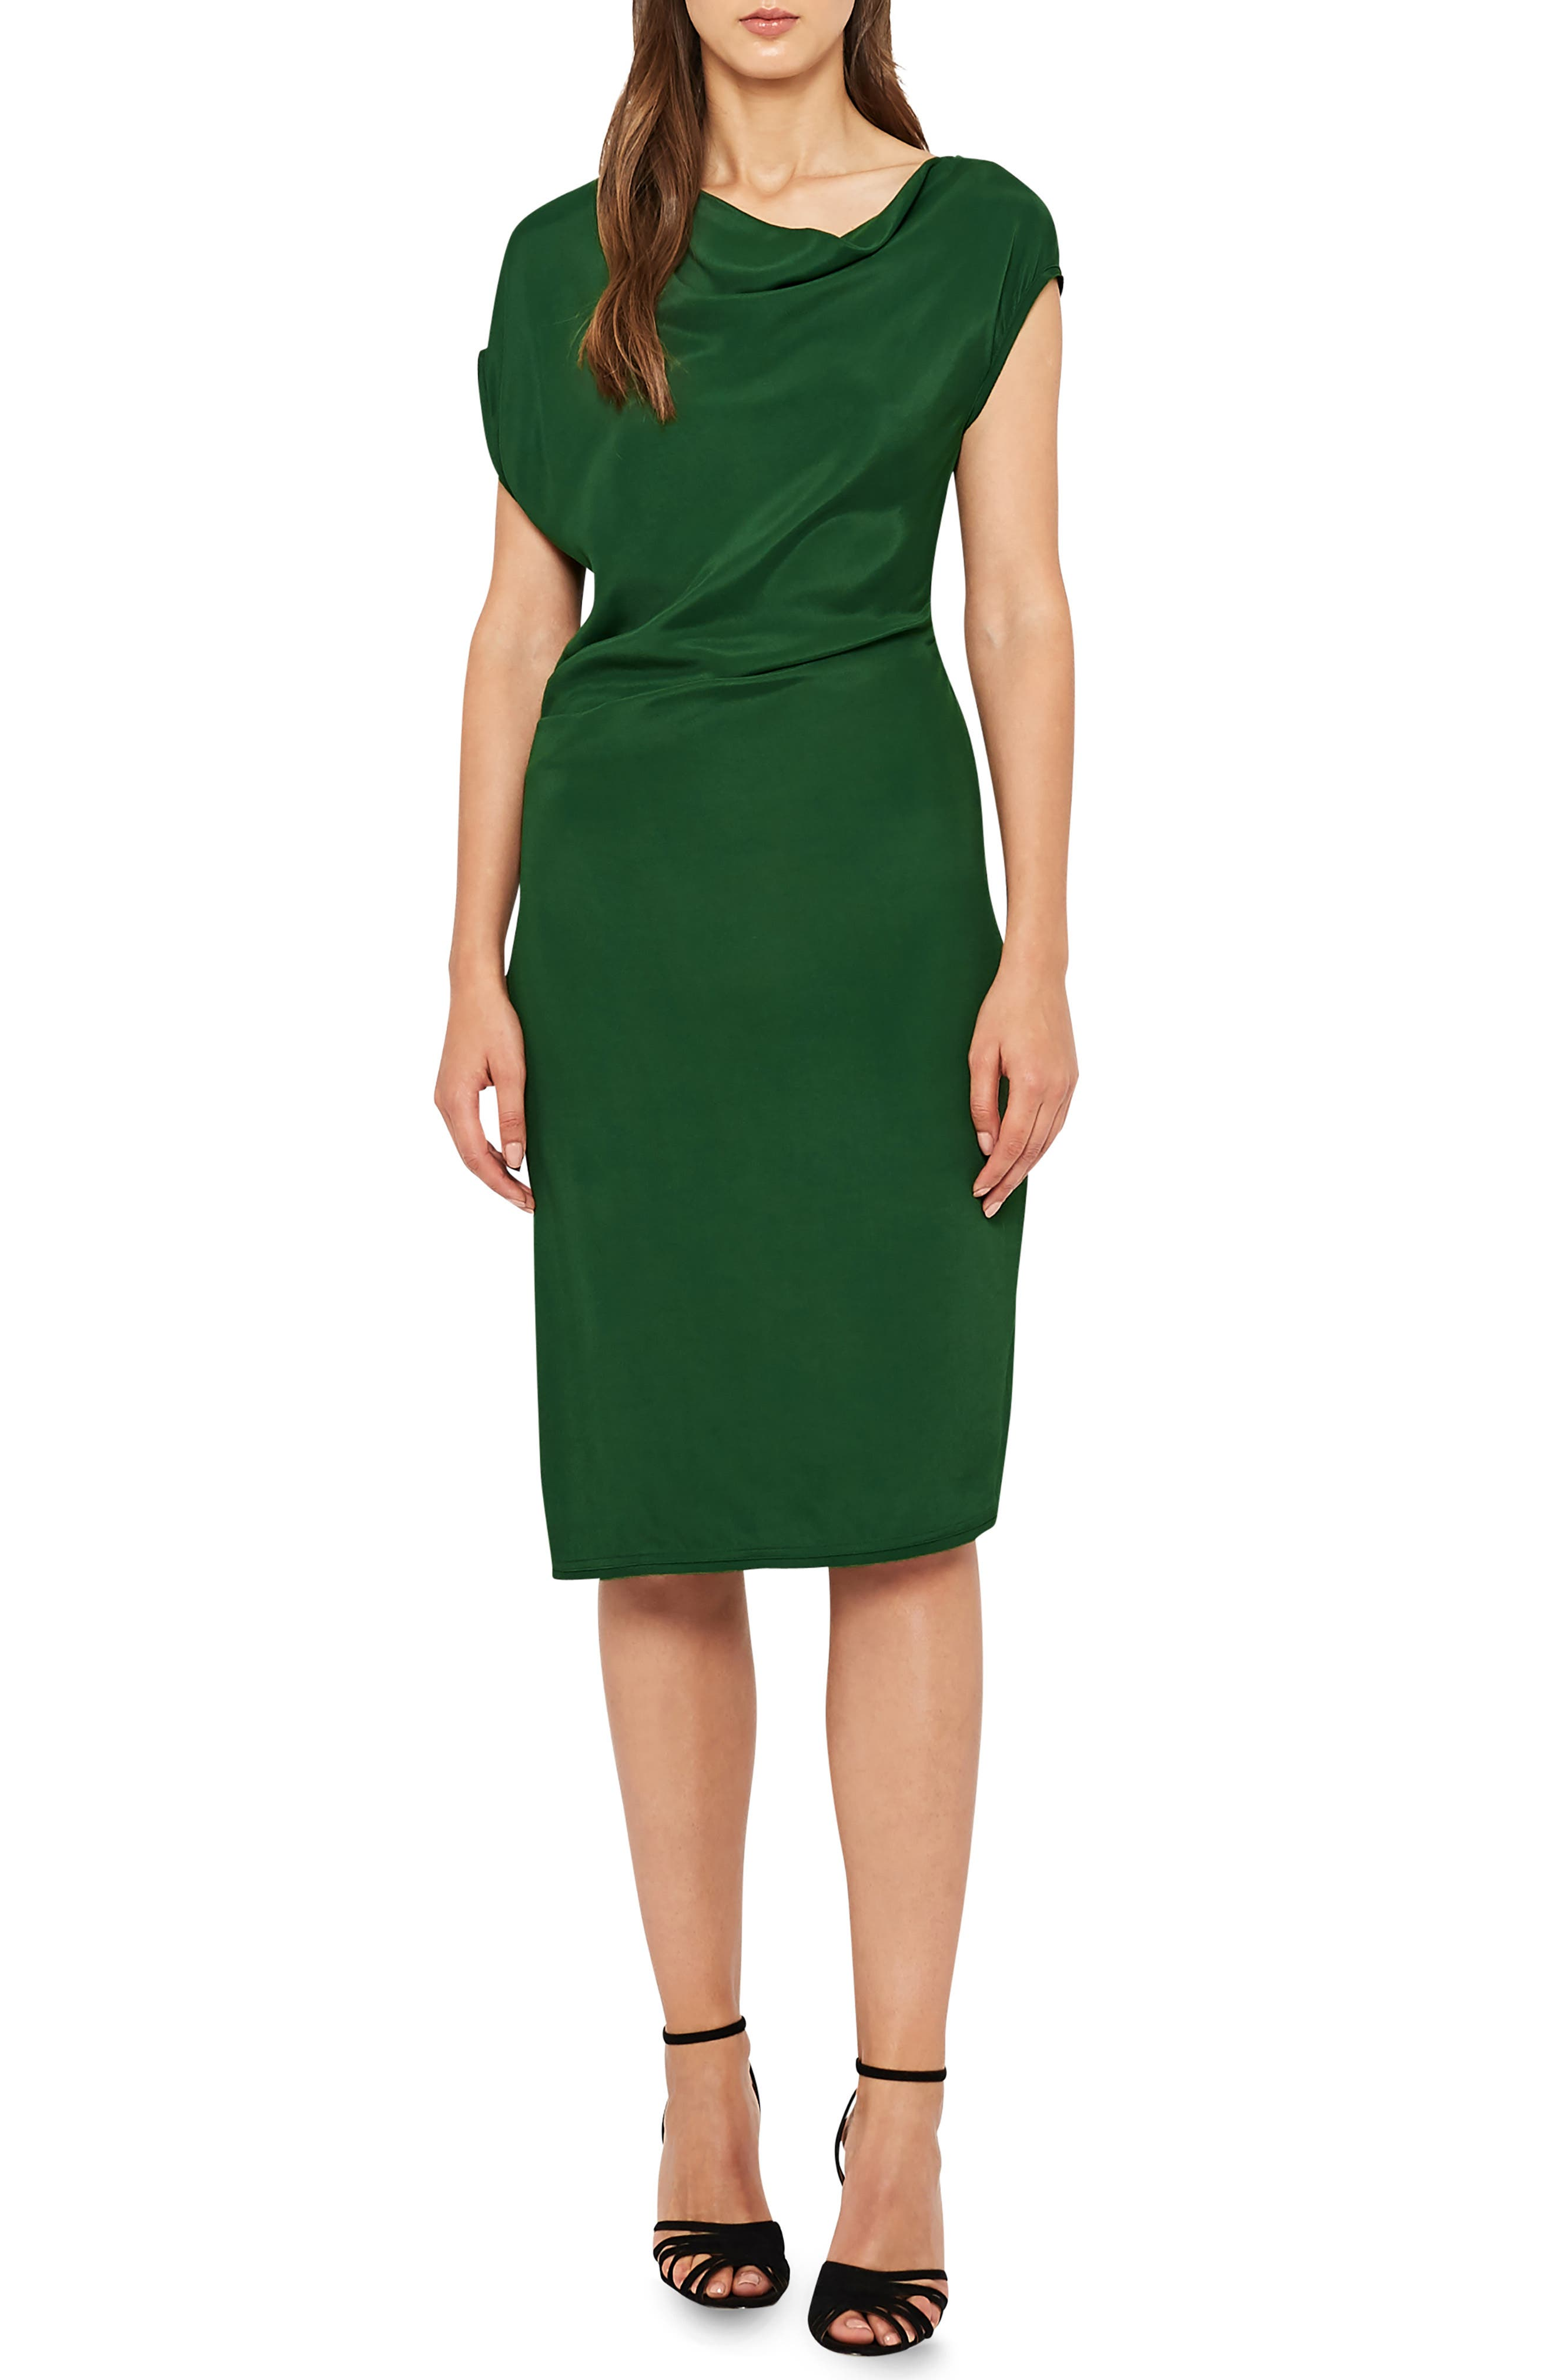 REISS Lore Asymmetrical Cap Sleeve Dress in Green